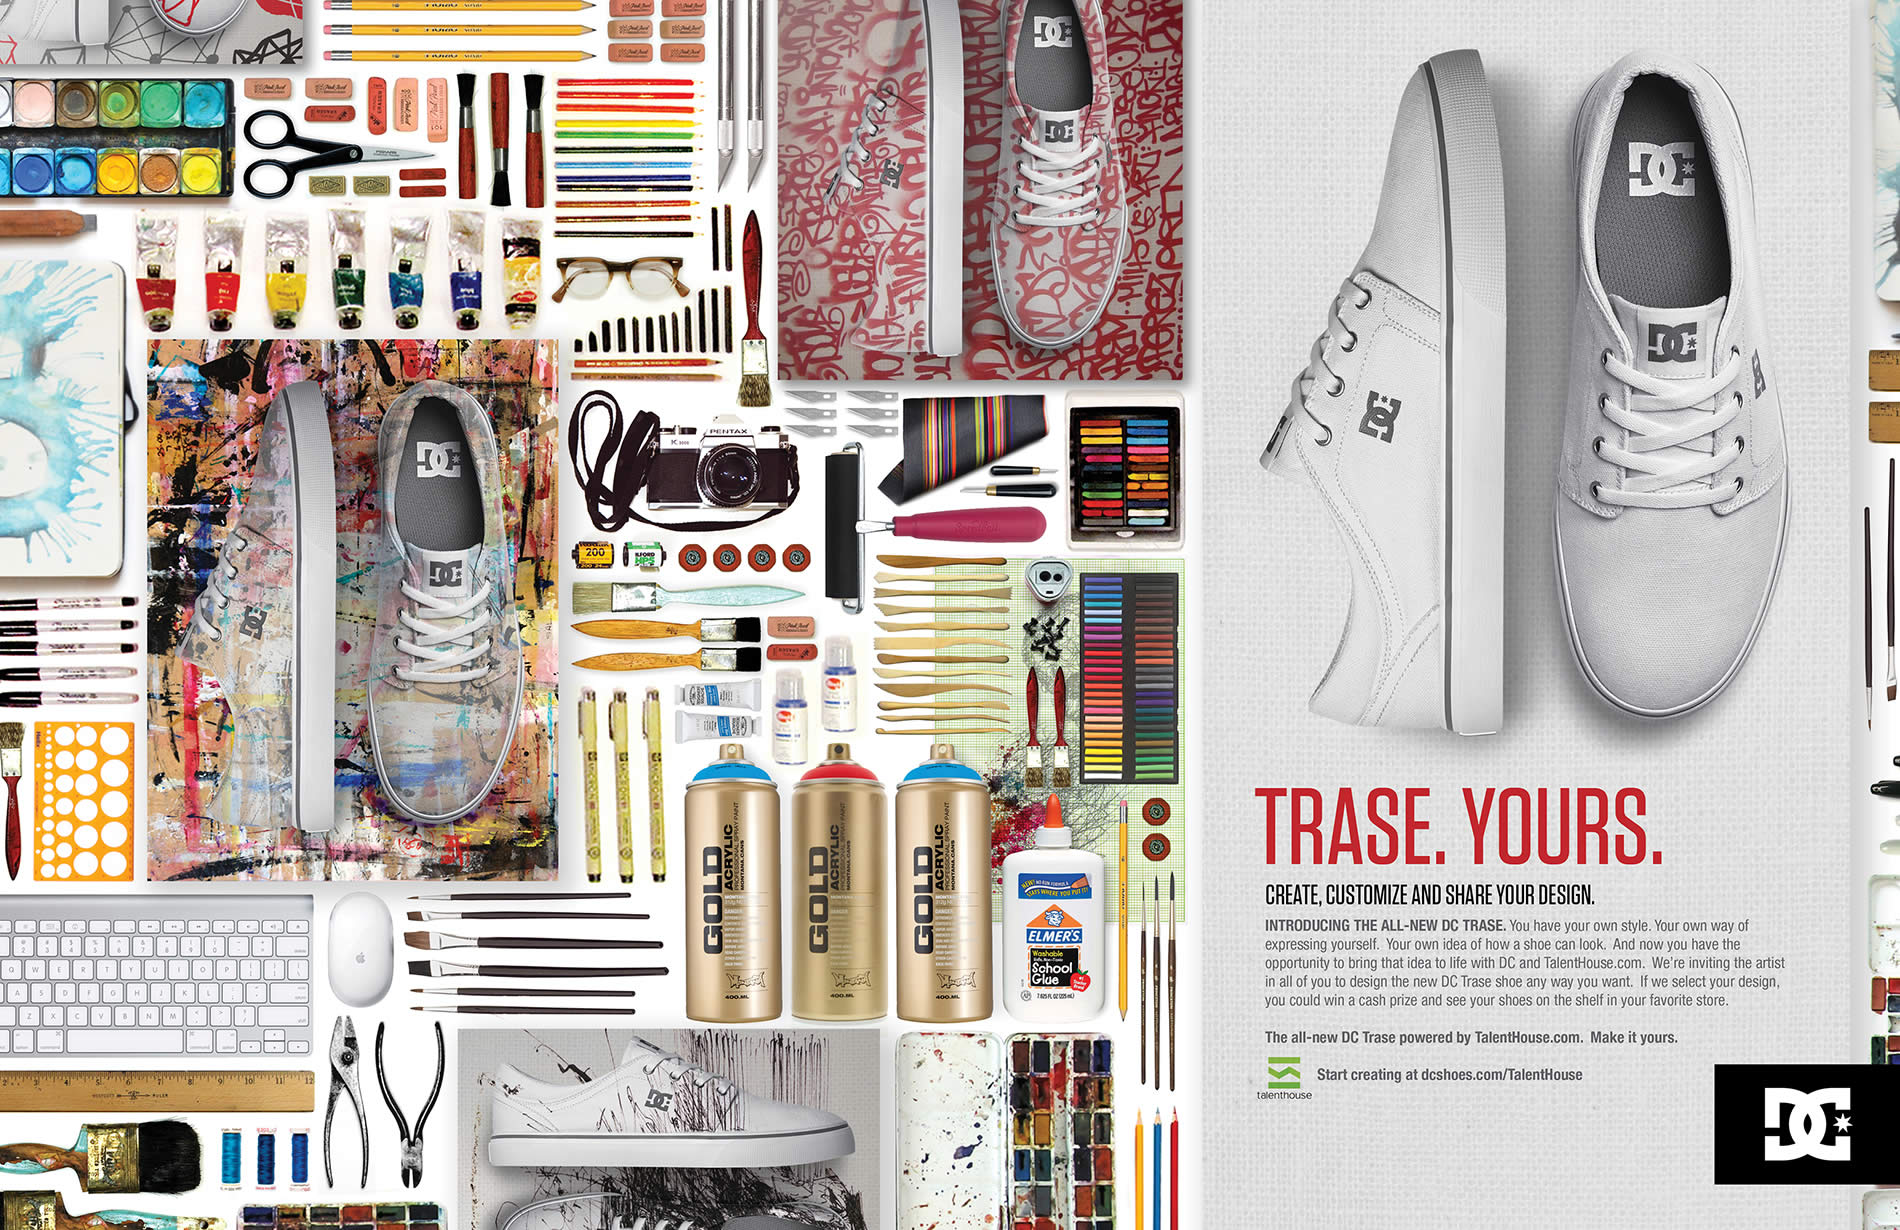 design the trase shoe for dc shoes - a talenthouse competition